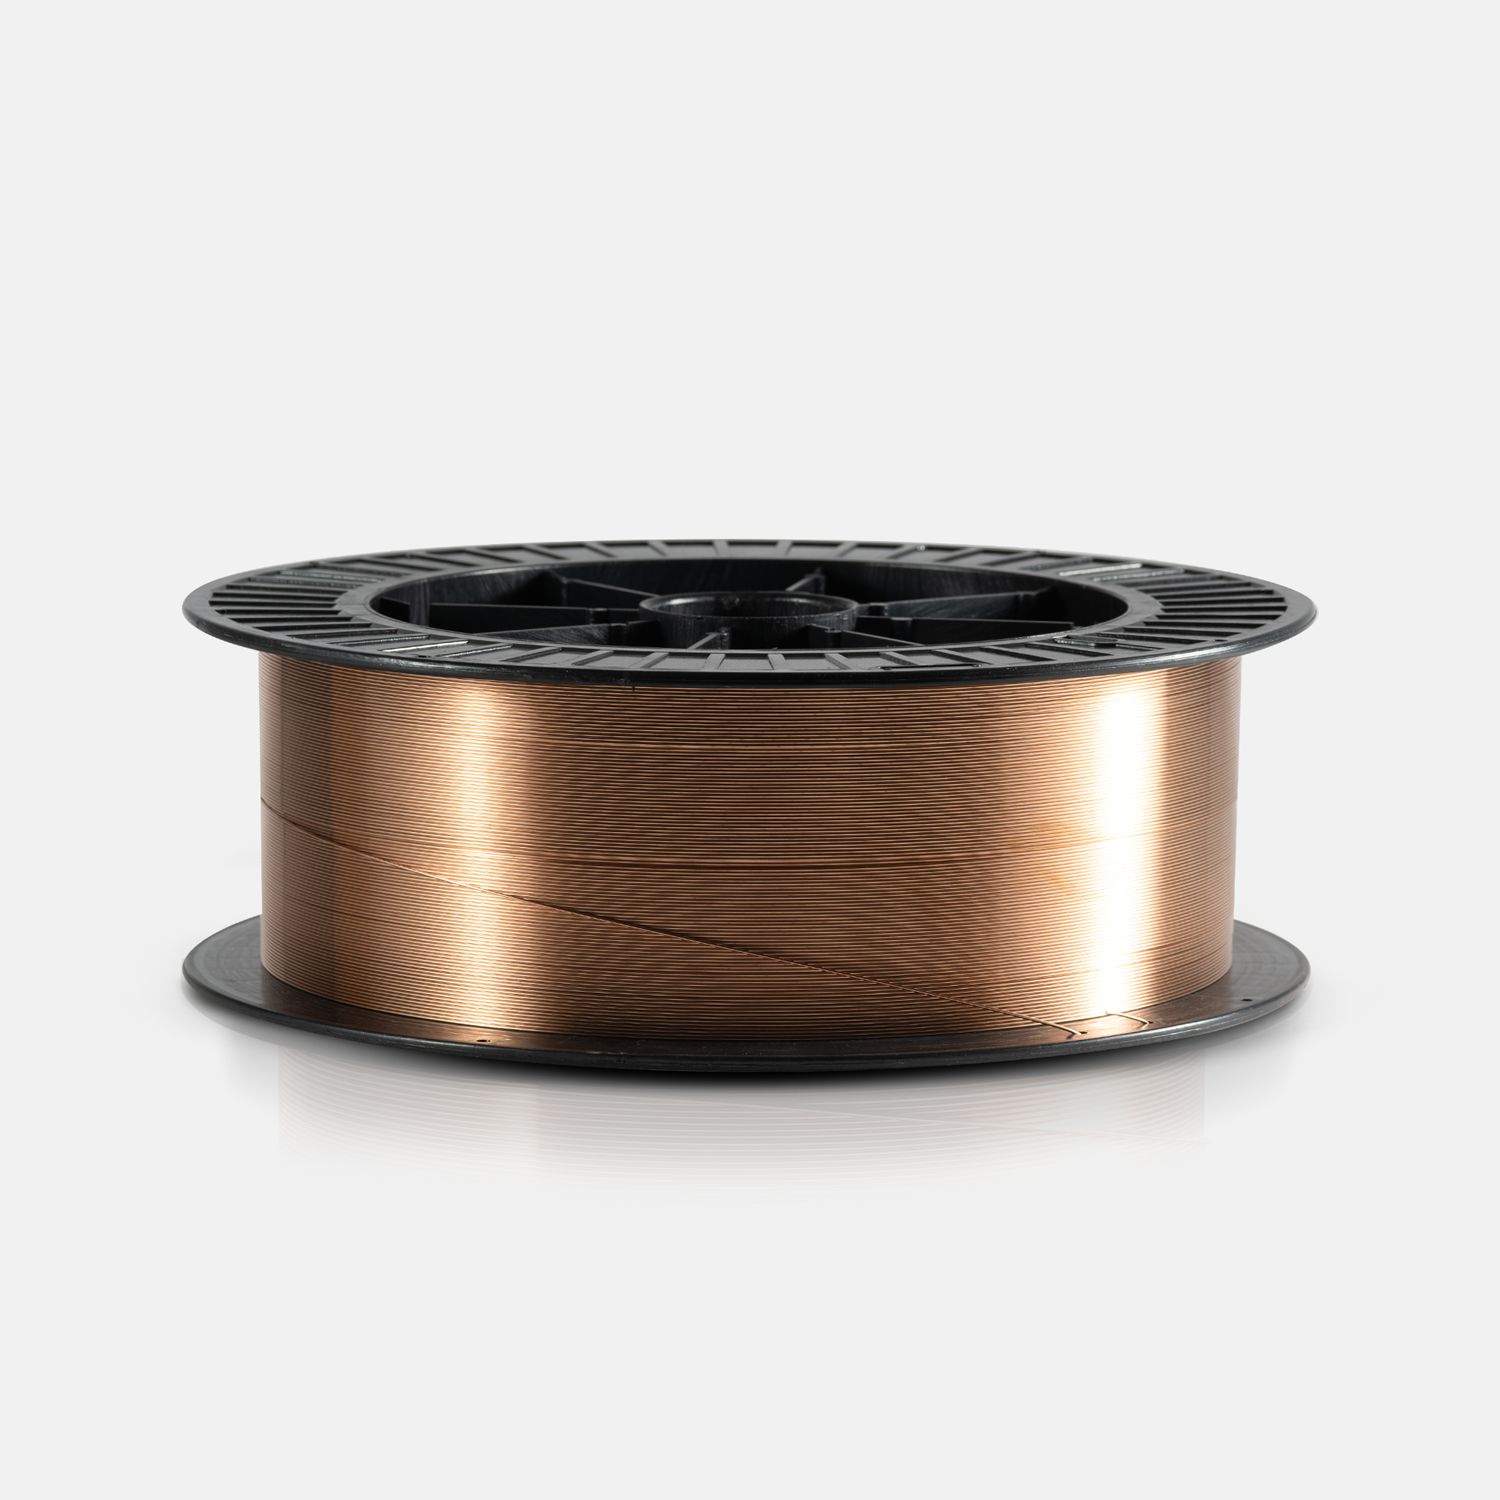 Deox Copper Side view